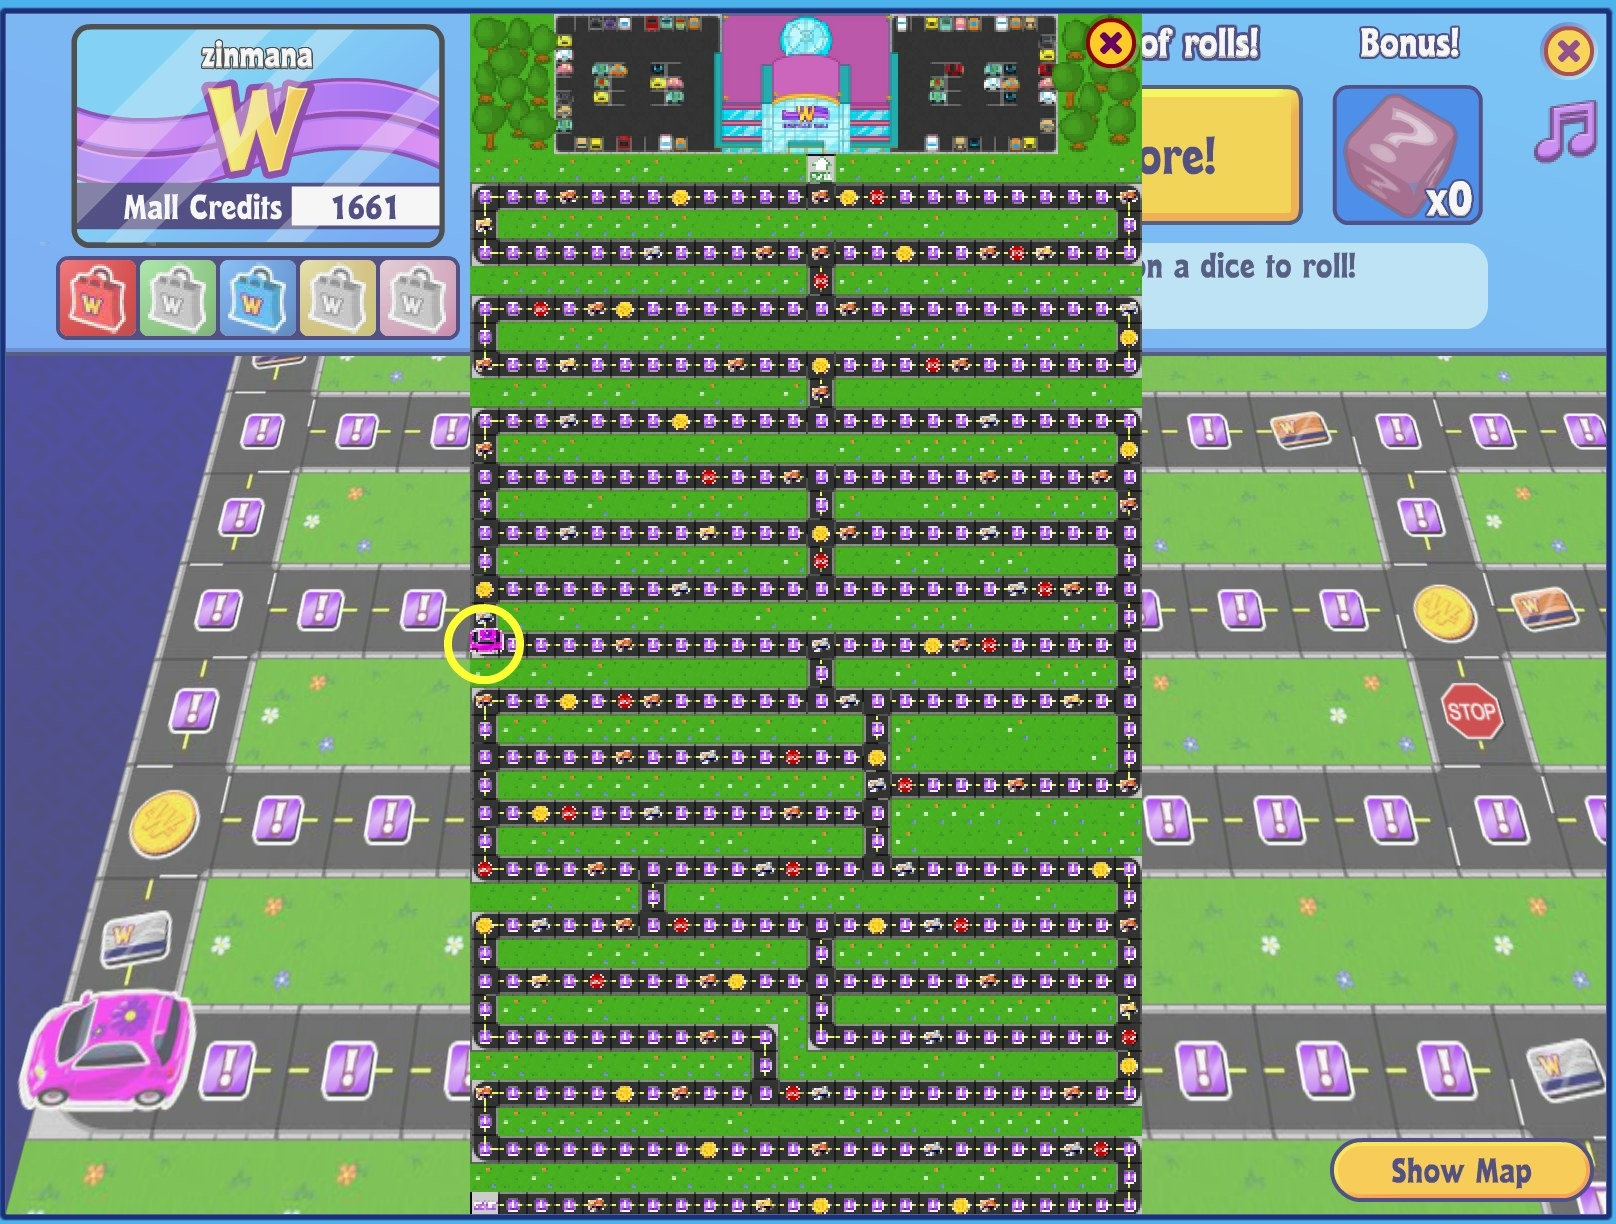 A screenshot of the game Spree! where the player moves around in a car on a game board